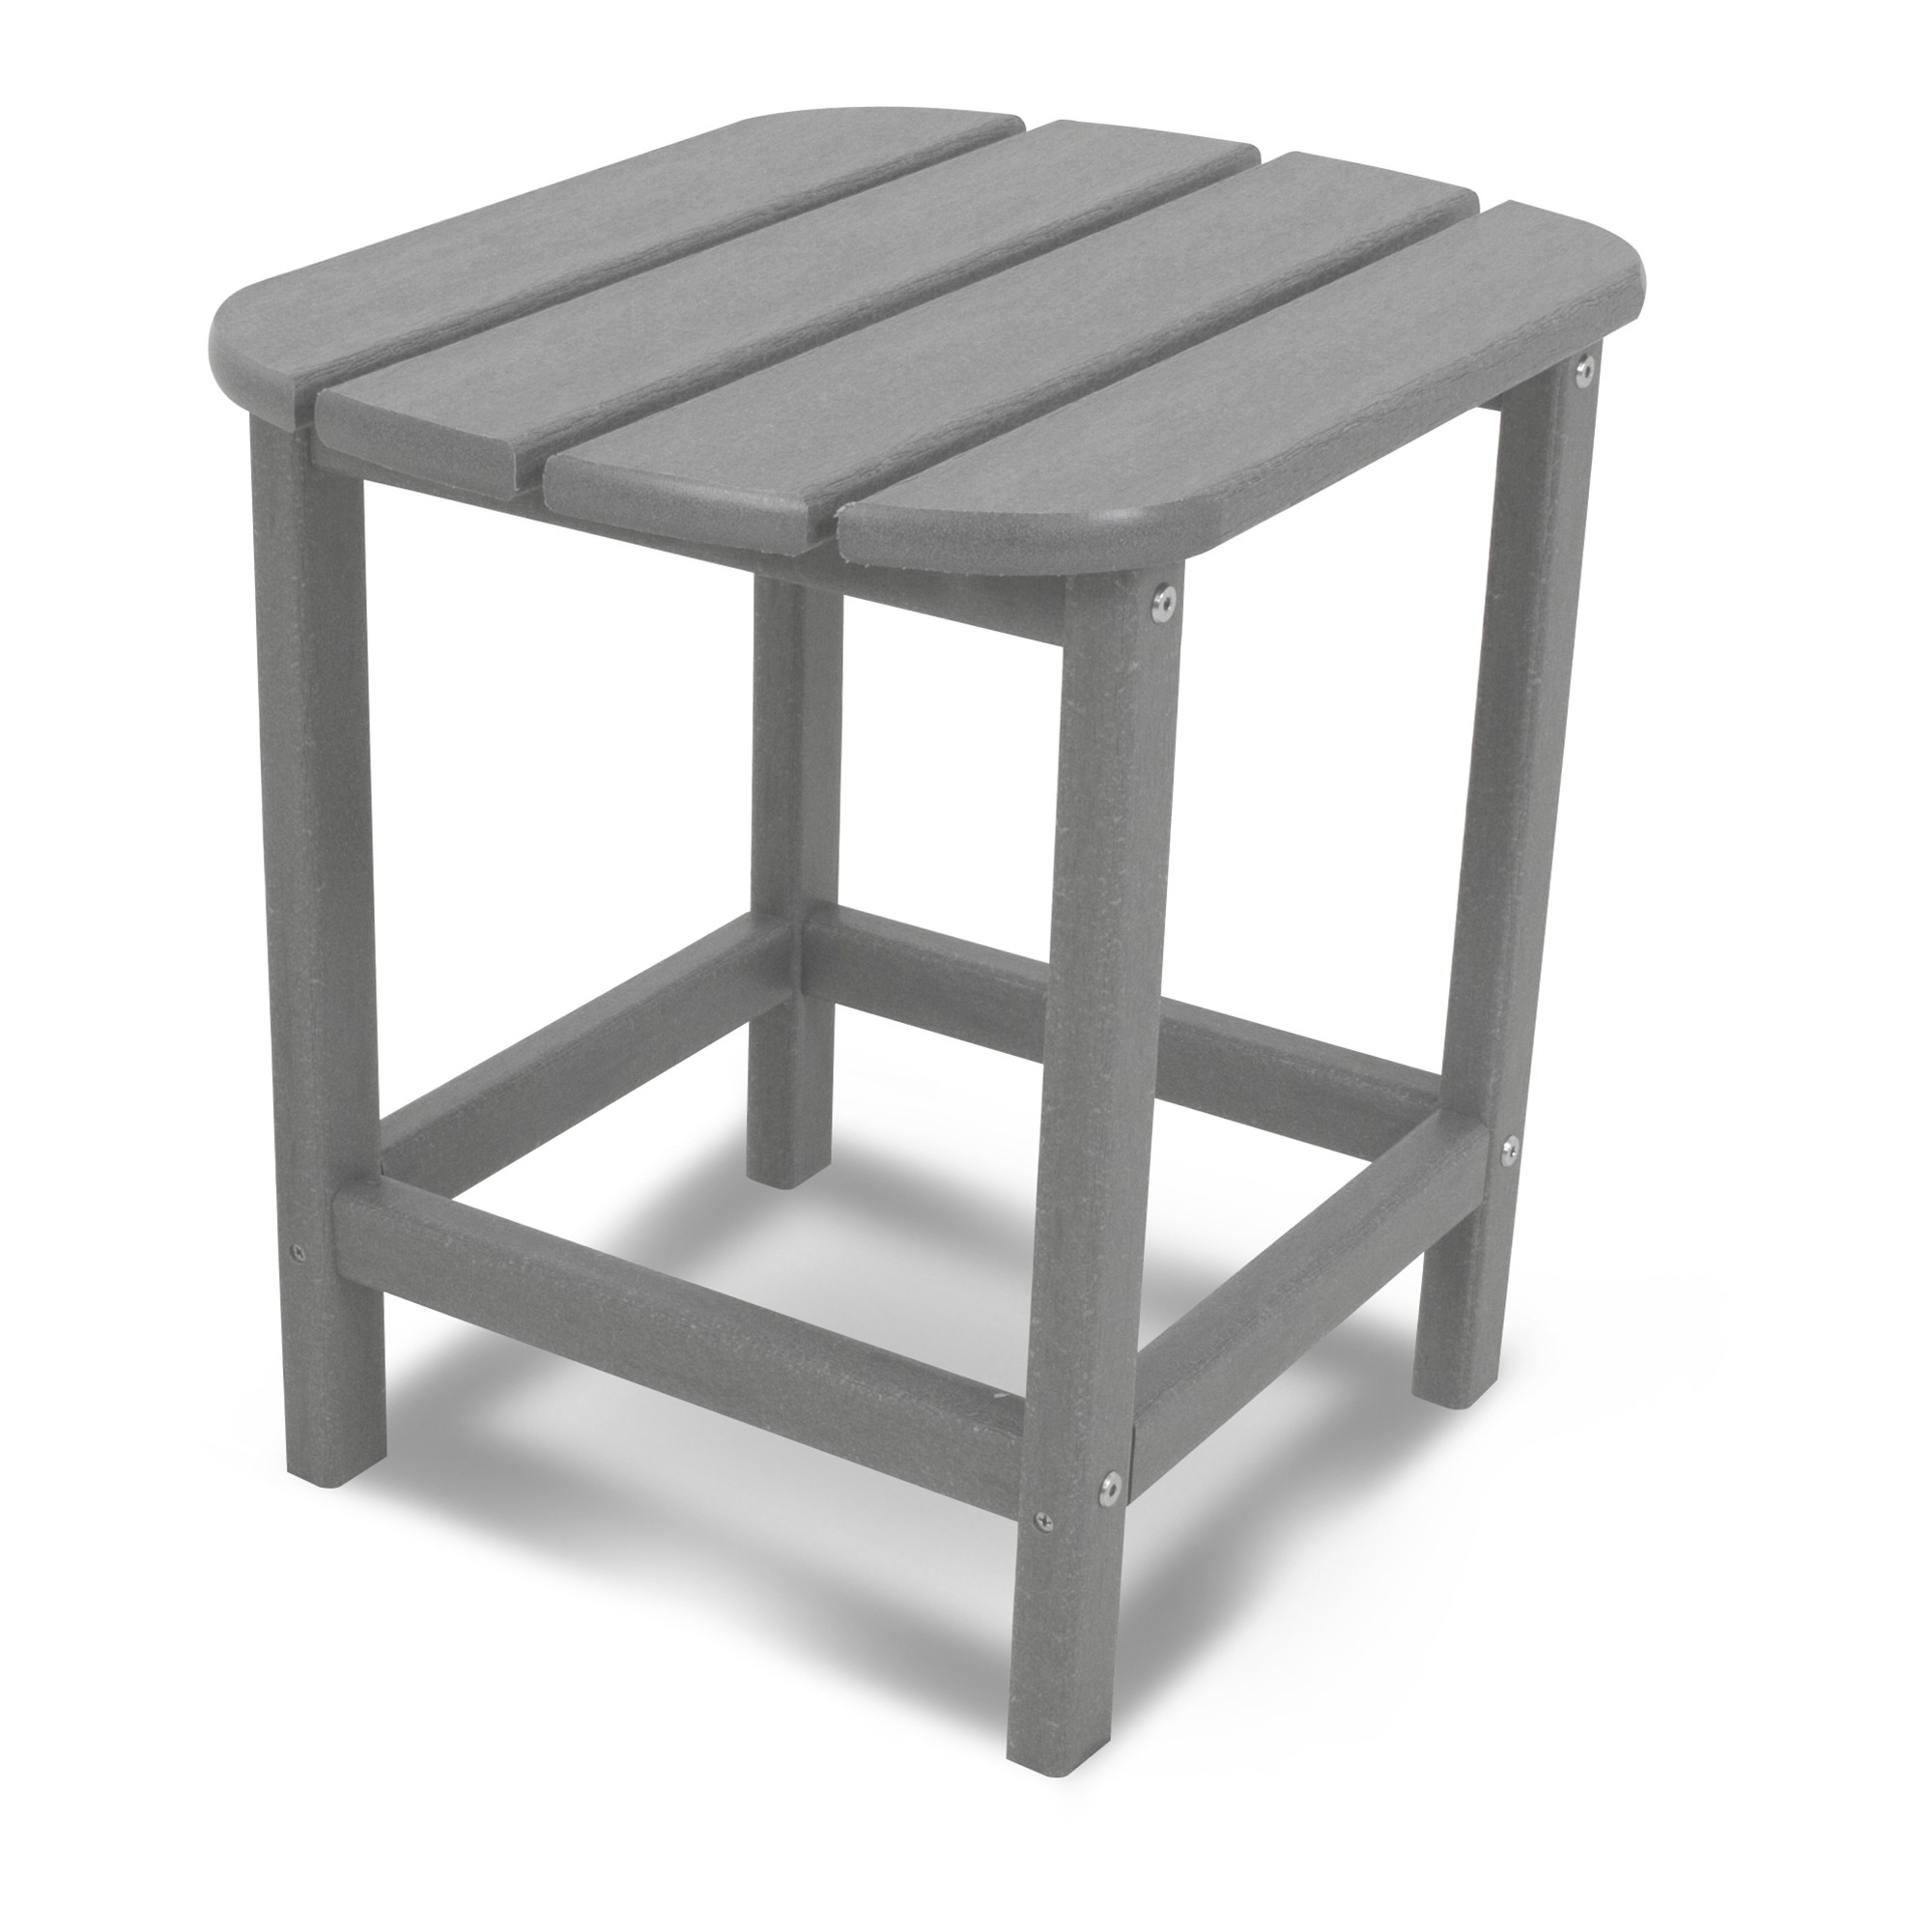 polywood south beach patio side table gray outdoor semi circle hall backyard umbrella stand corner chests cabinets jcpenny bedding ryobi ashley furniture vennilux coffee changing